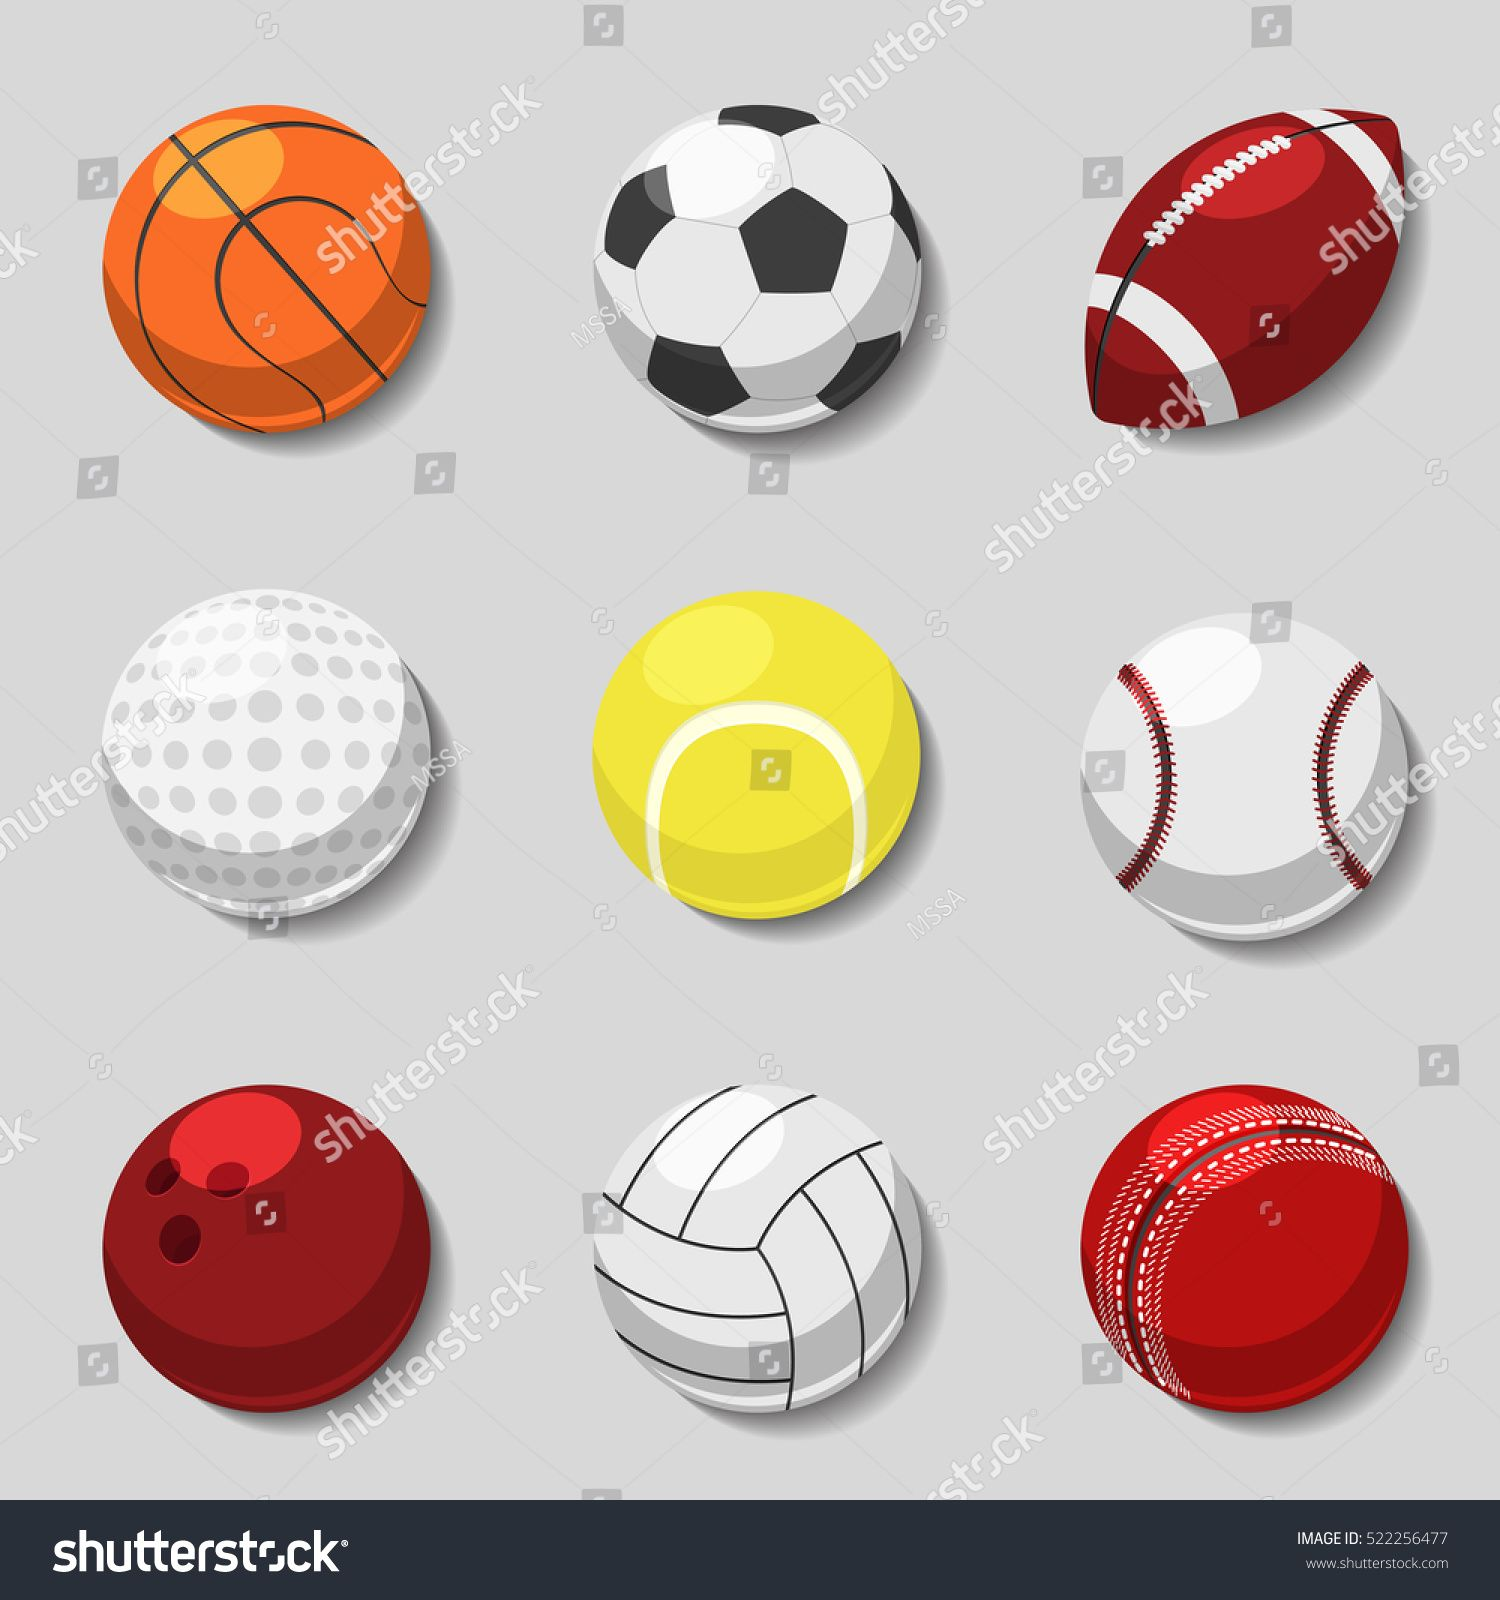 Sports Balls Vector Cartoon Ball Set For Soccer And Tennis Rugby Basketball And Football Balls Illustration Sponsored Sports Balls Football Ball Sports